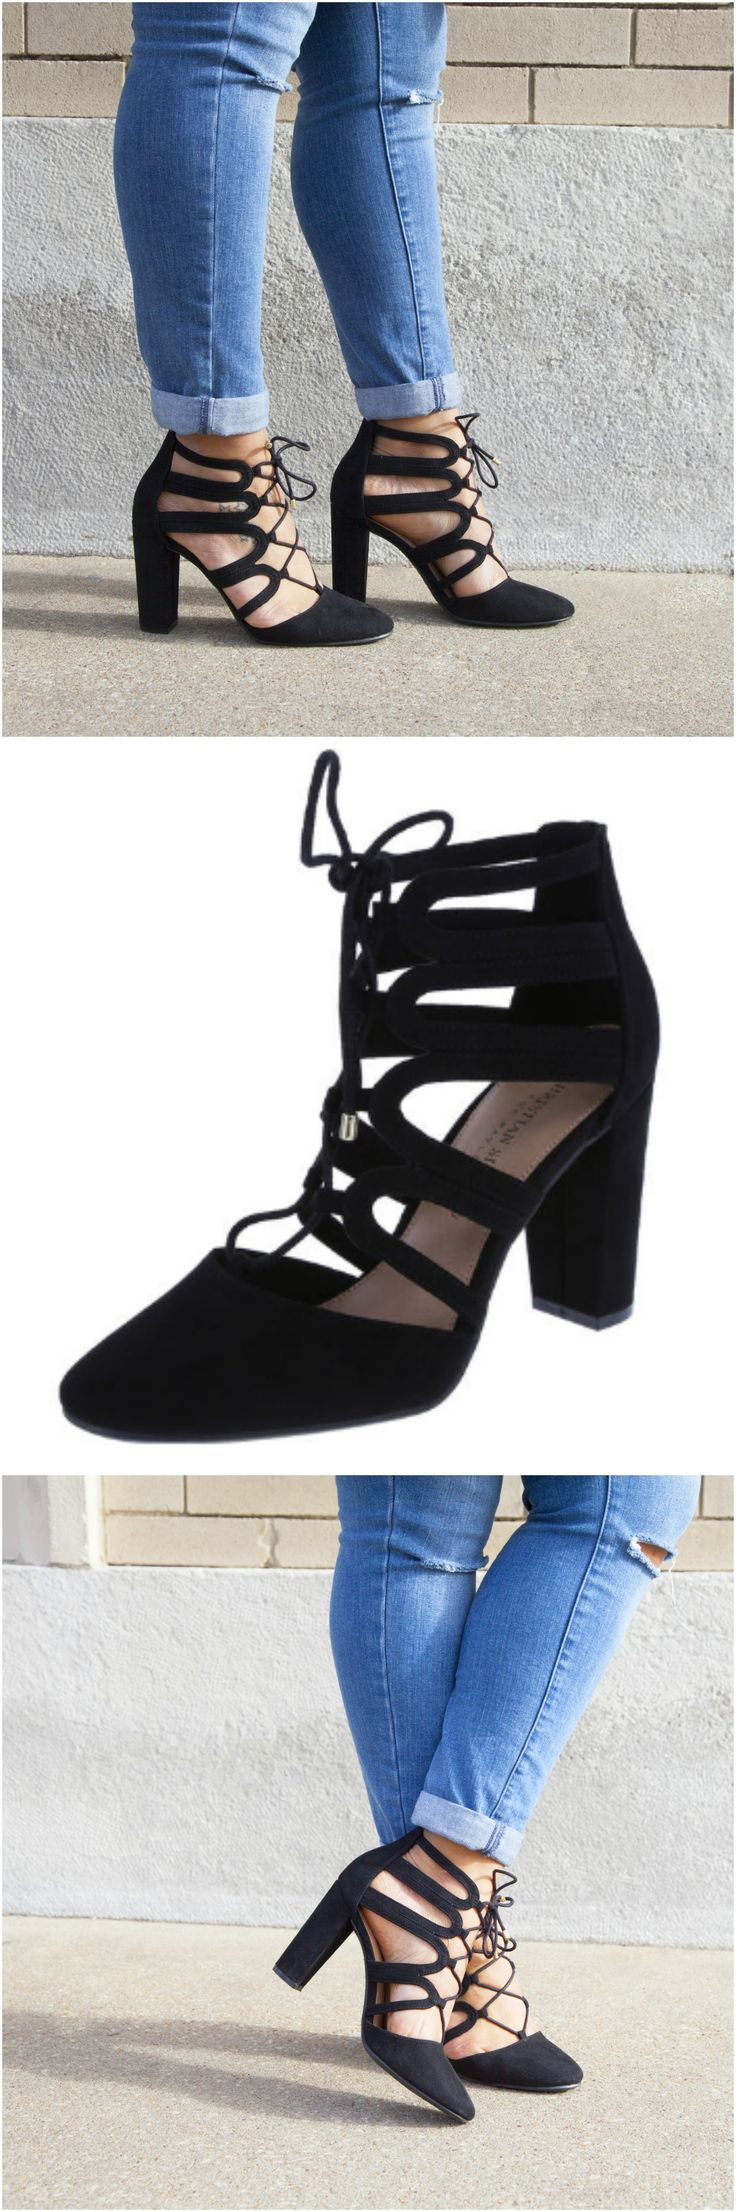 200 best Christian Siriano for Payless images on Pinterest